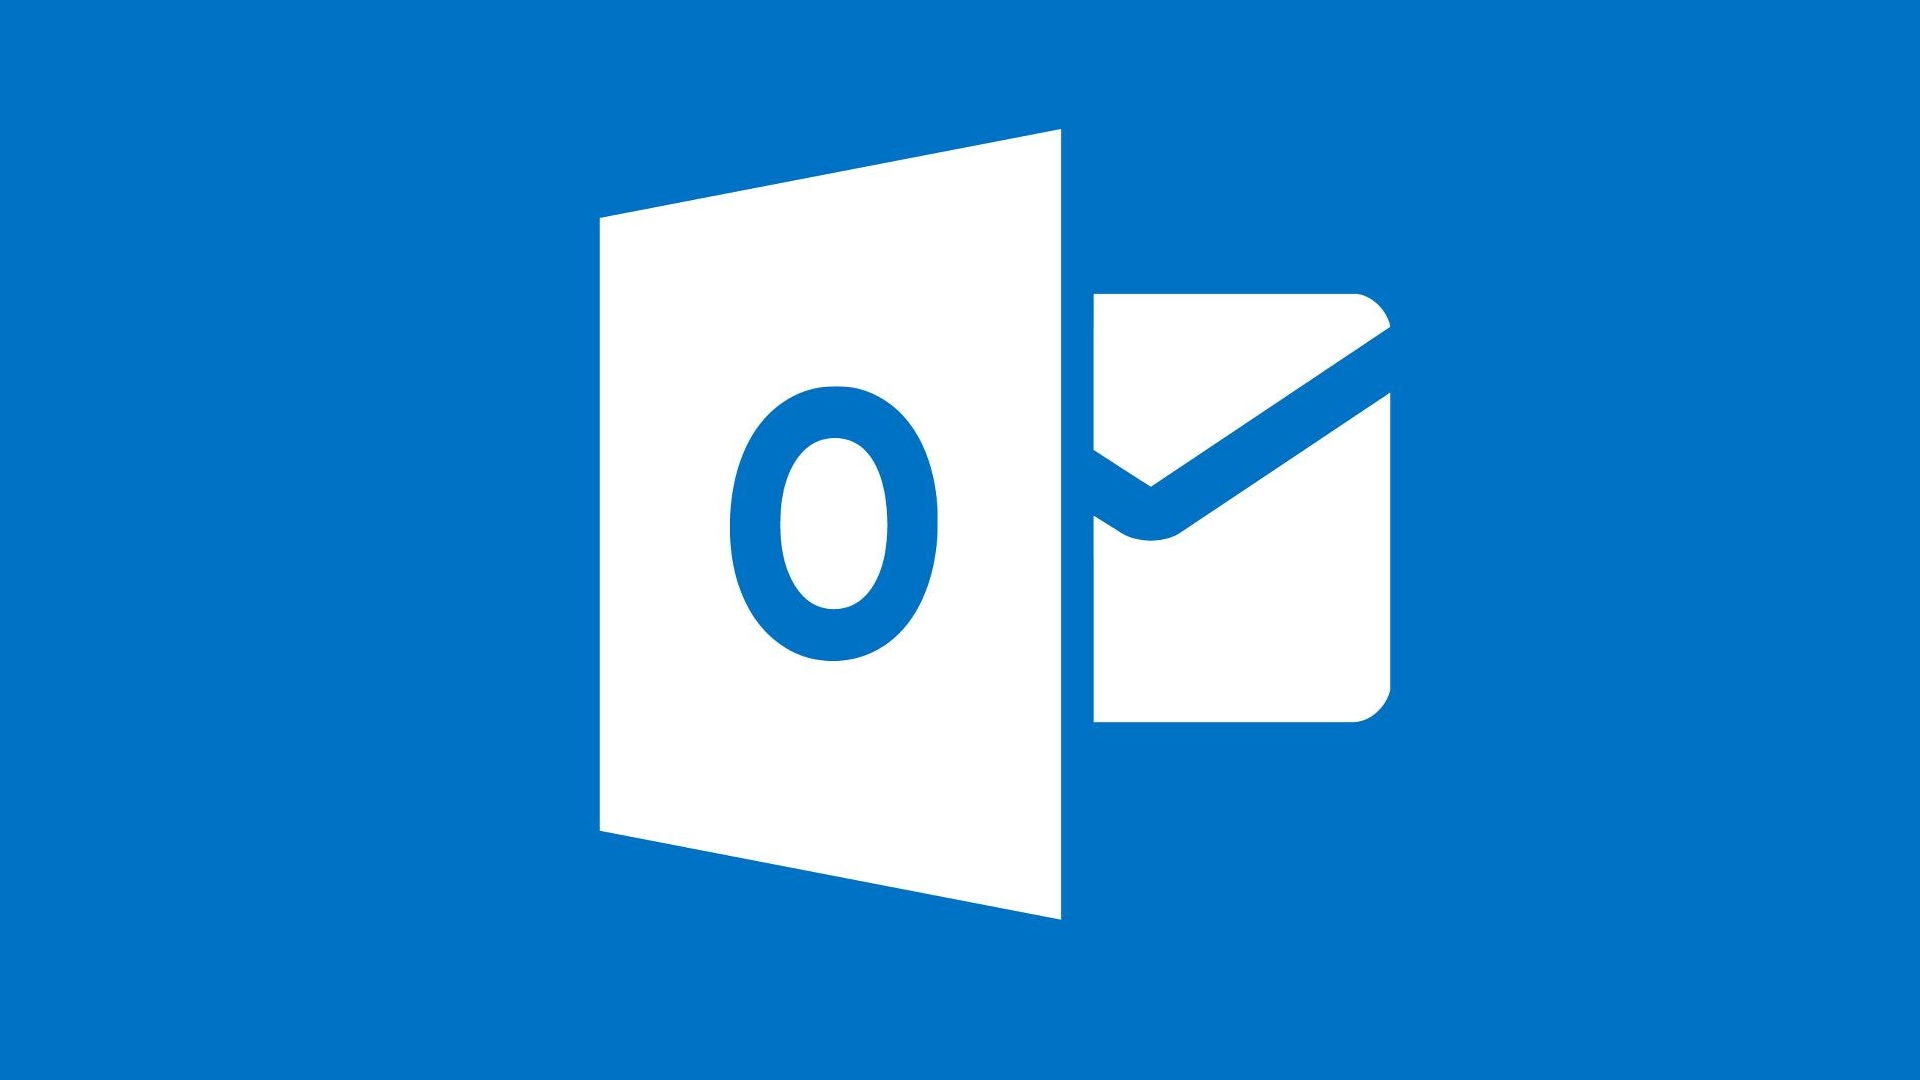 Microsoft launched outlook email